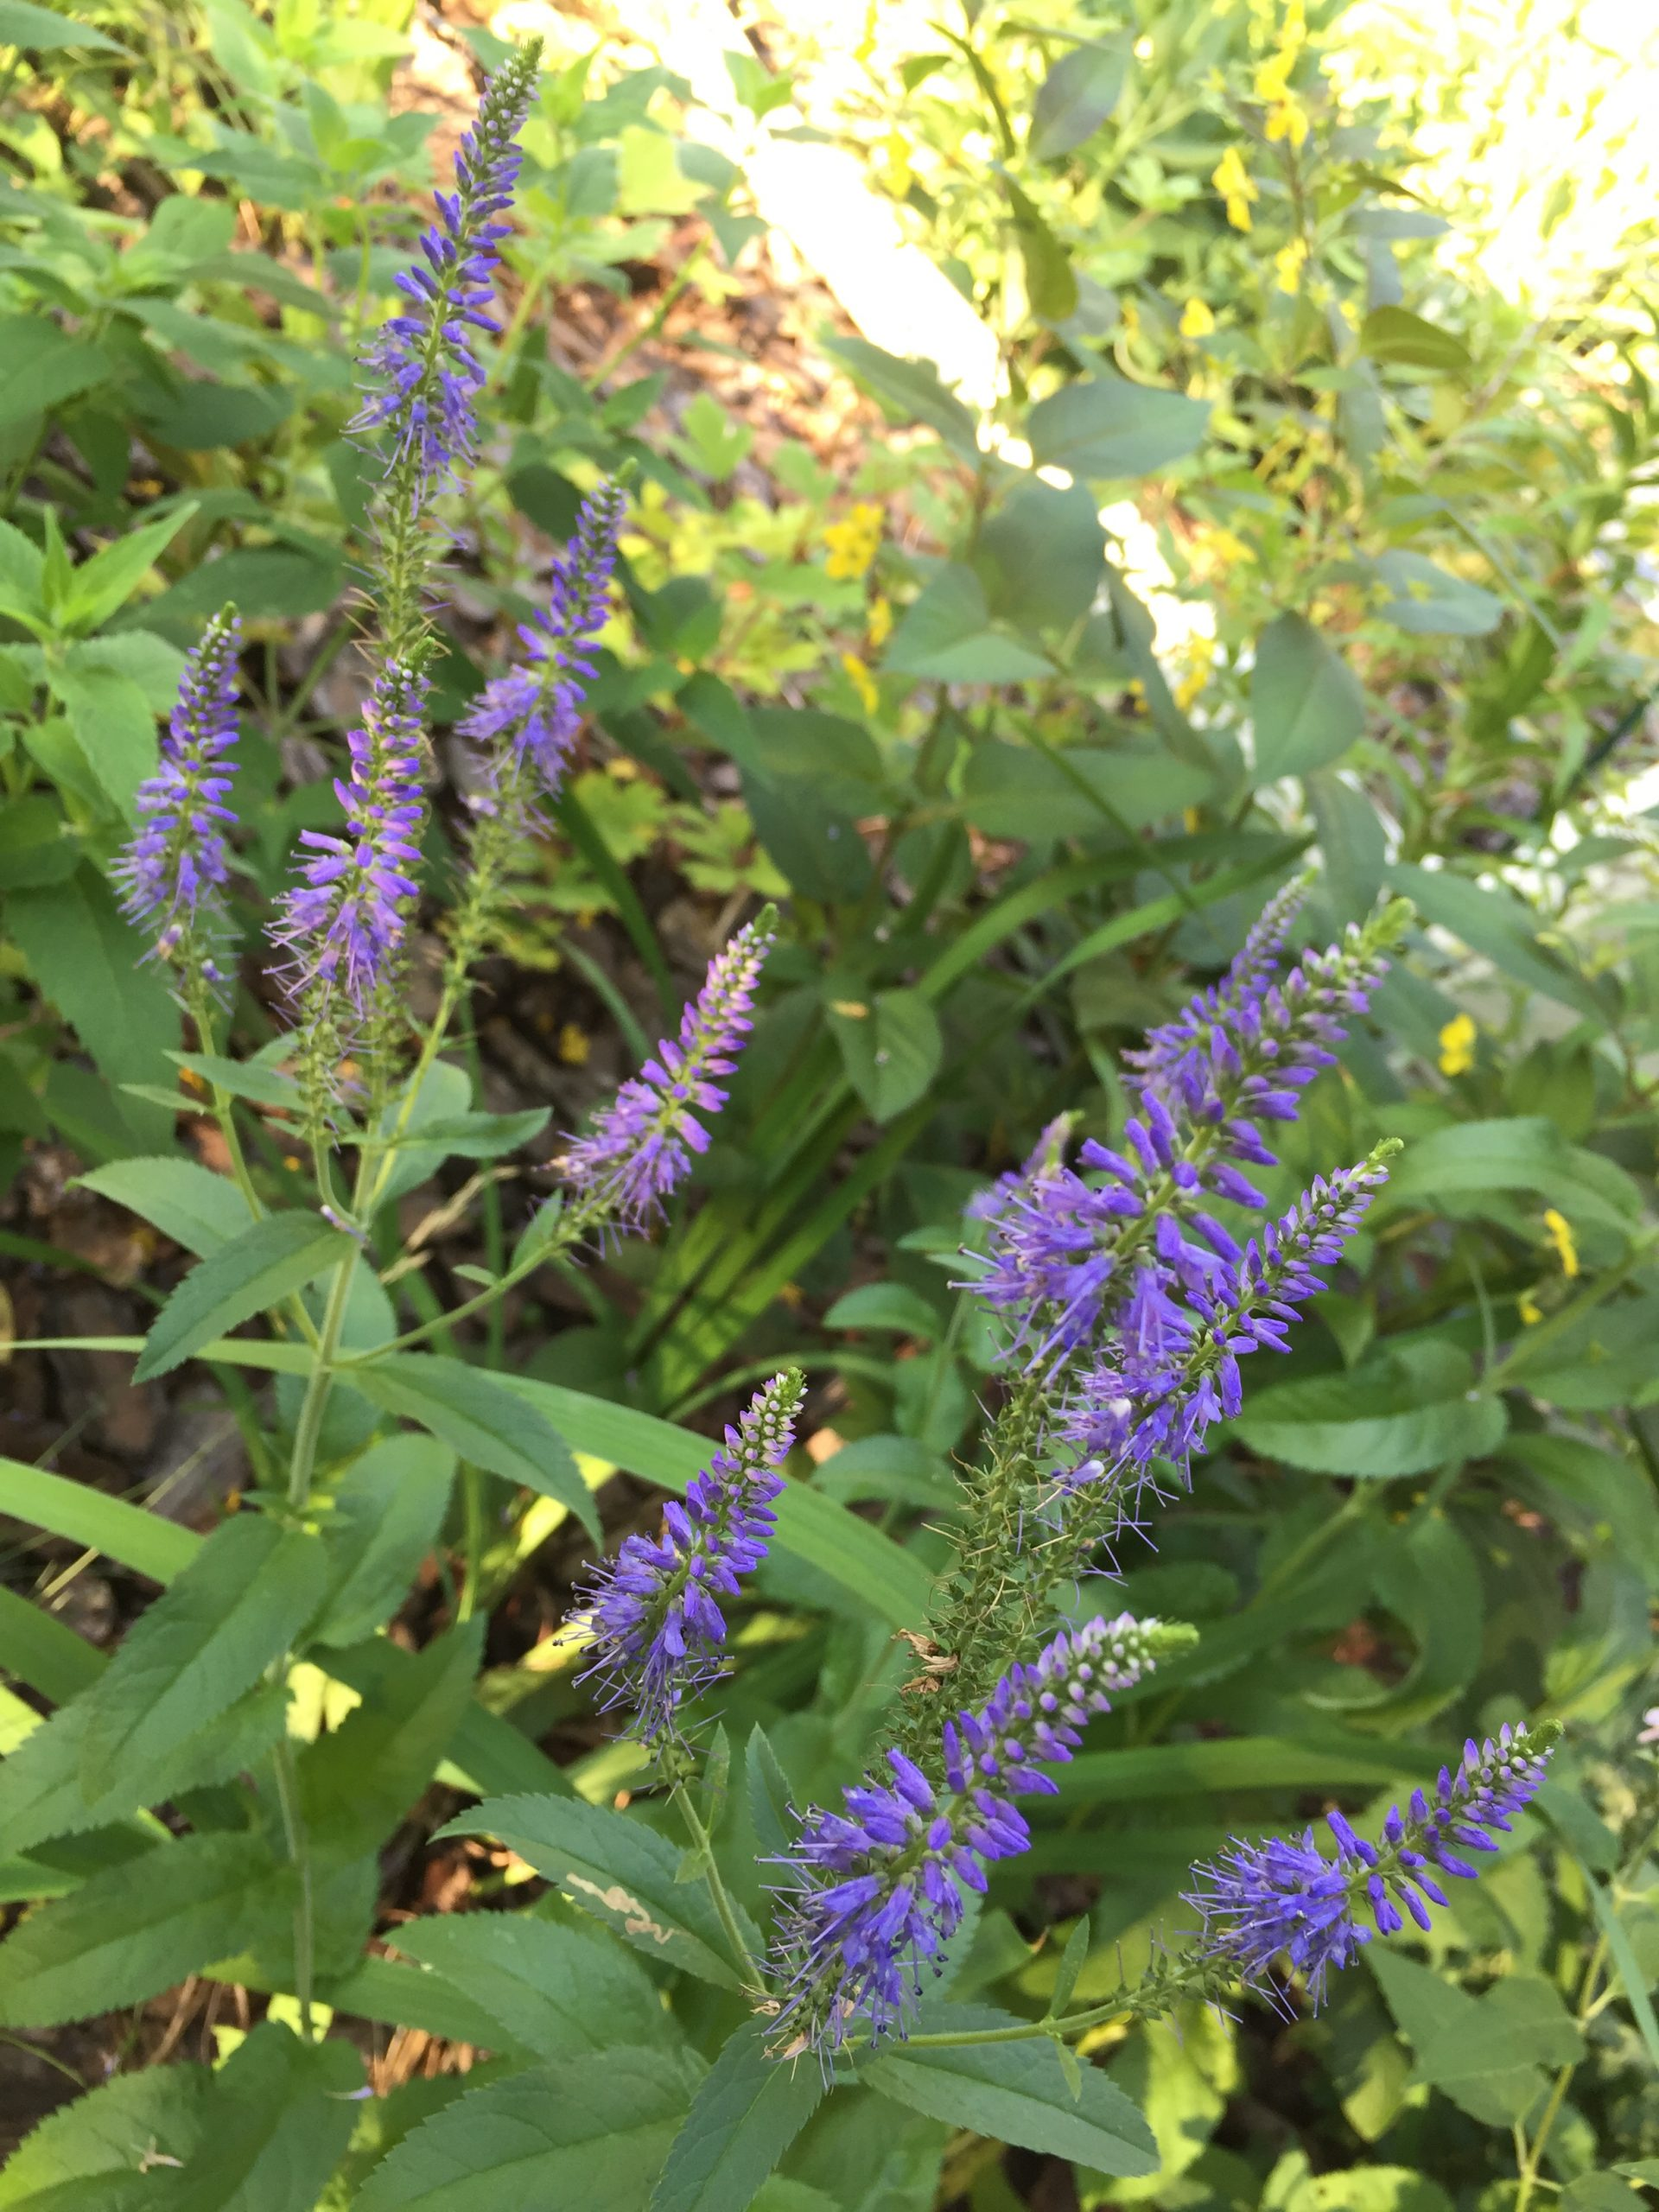 Three images of pollinator-friendly native plants